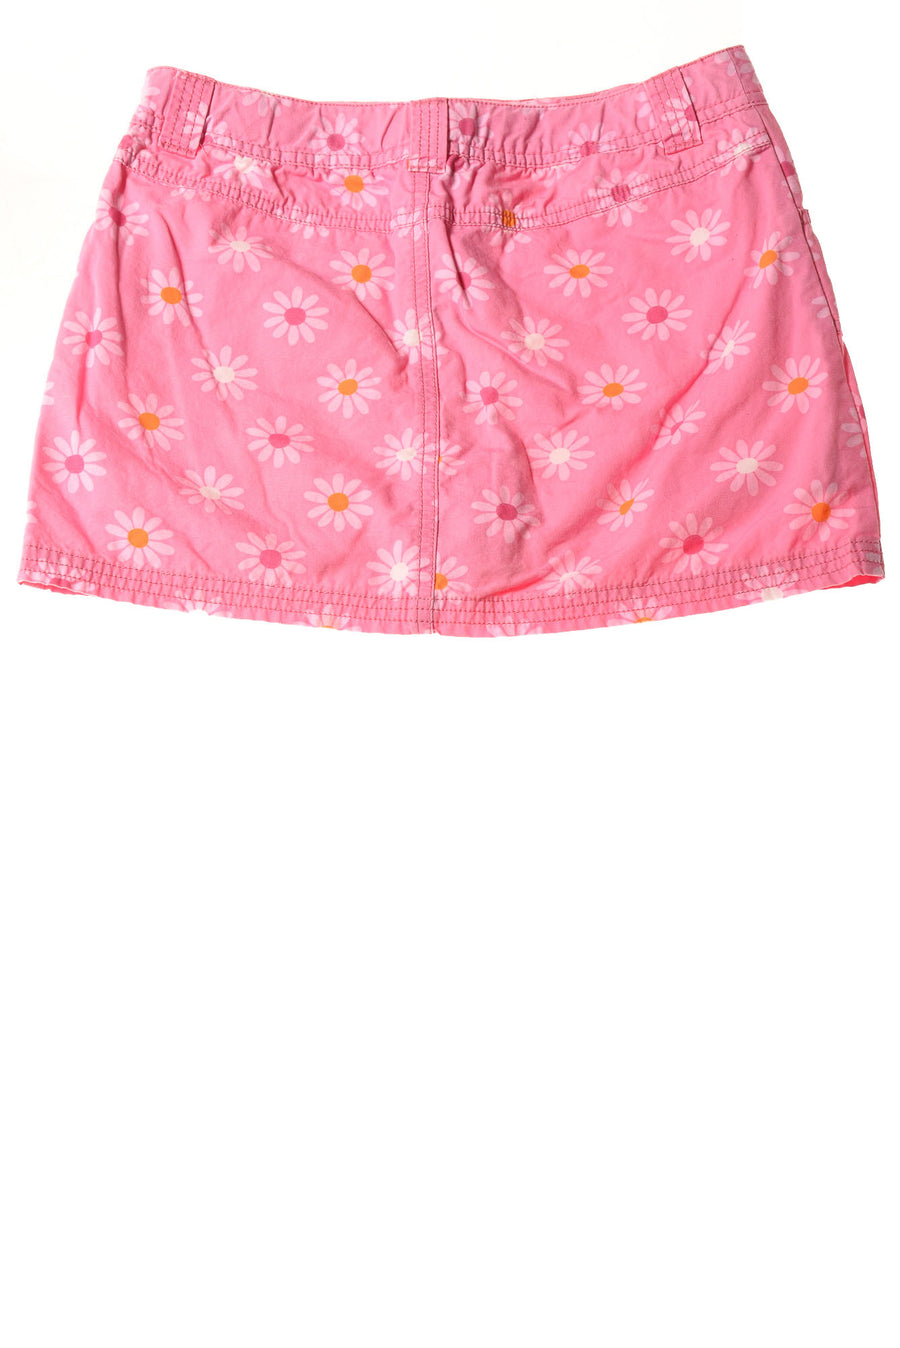 USED Circo Girl's Skorts  10/12 Pink /Floral